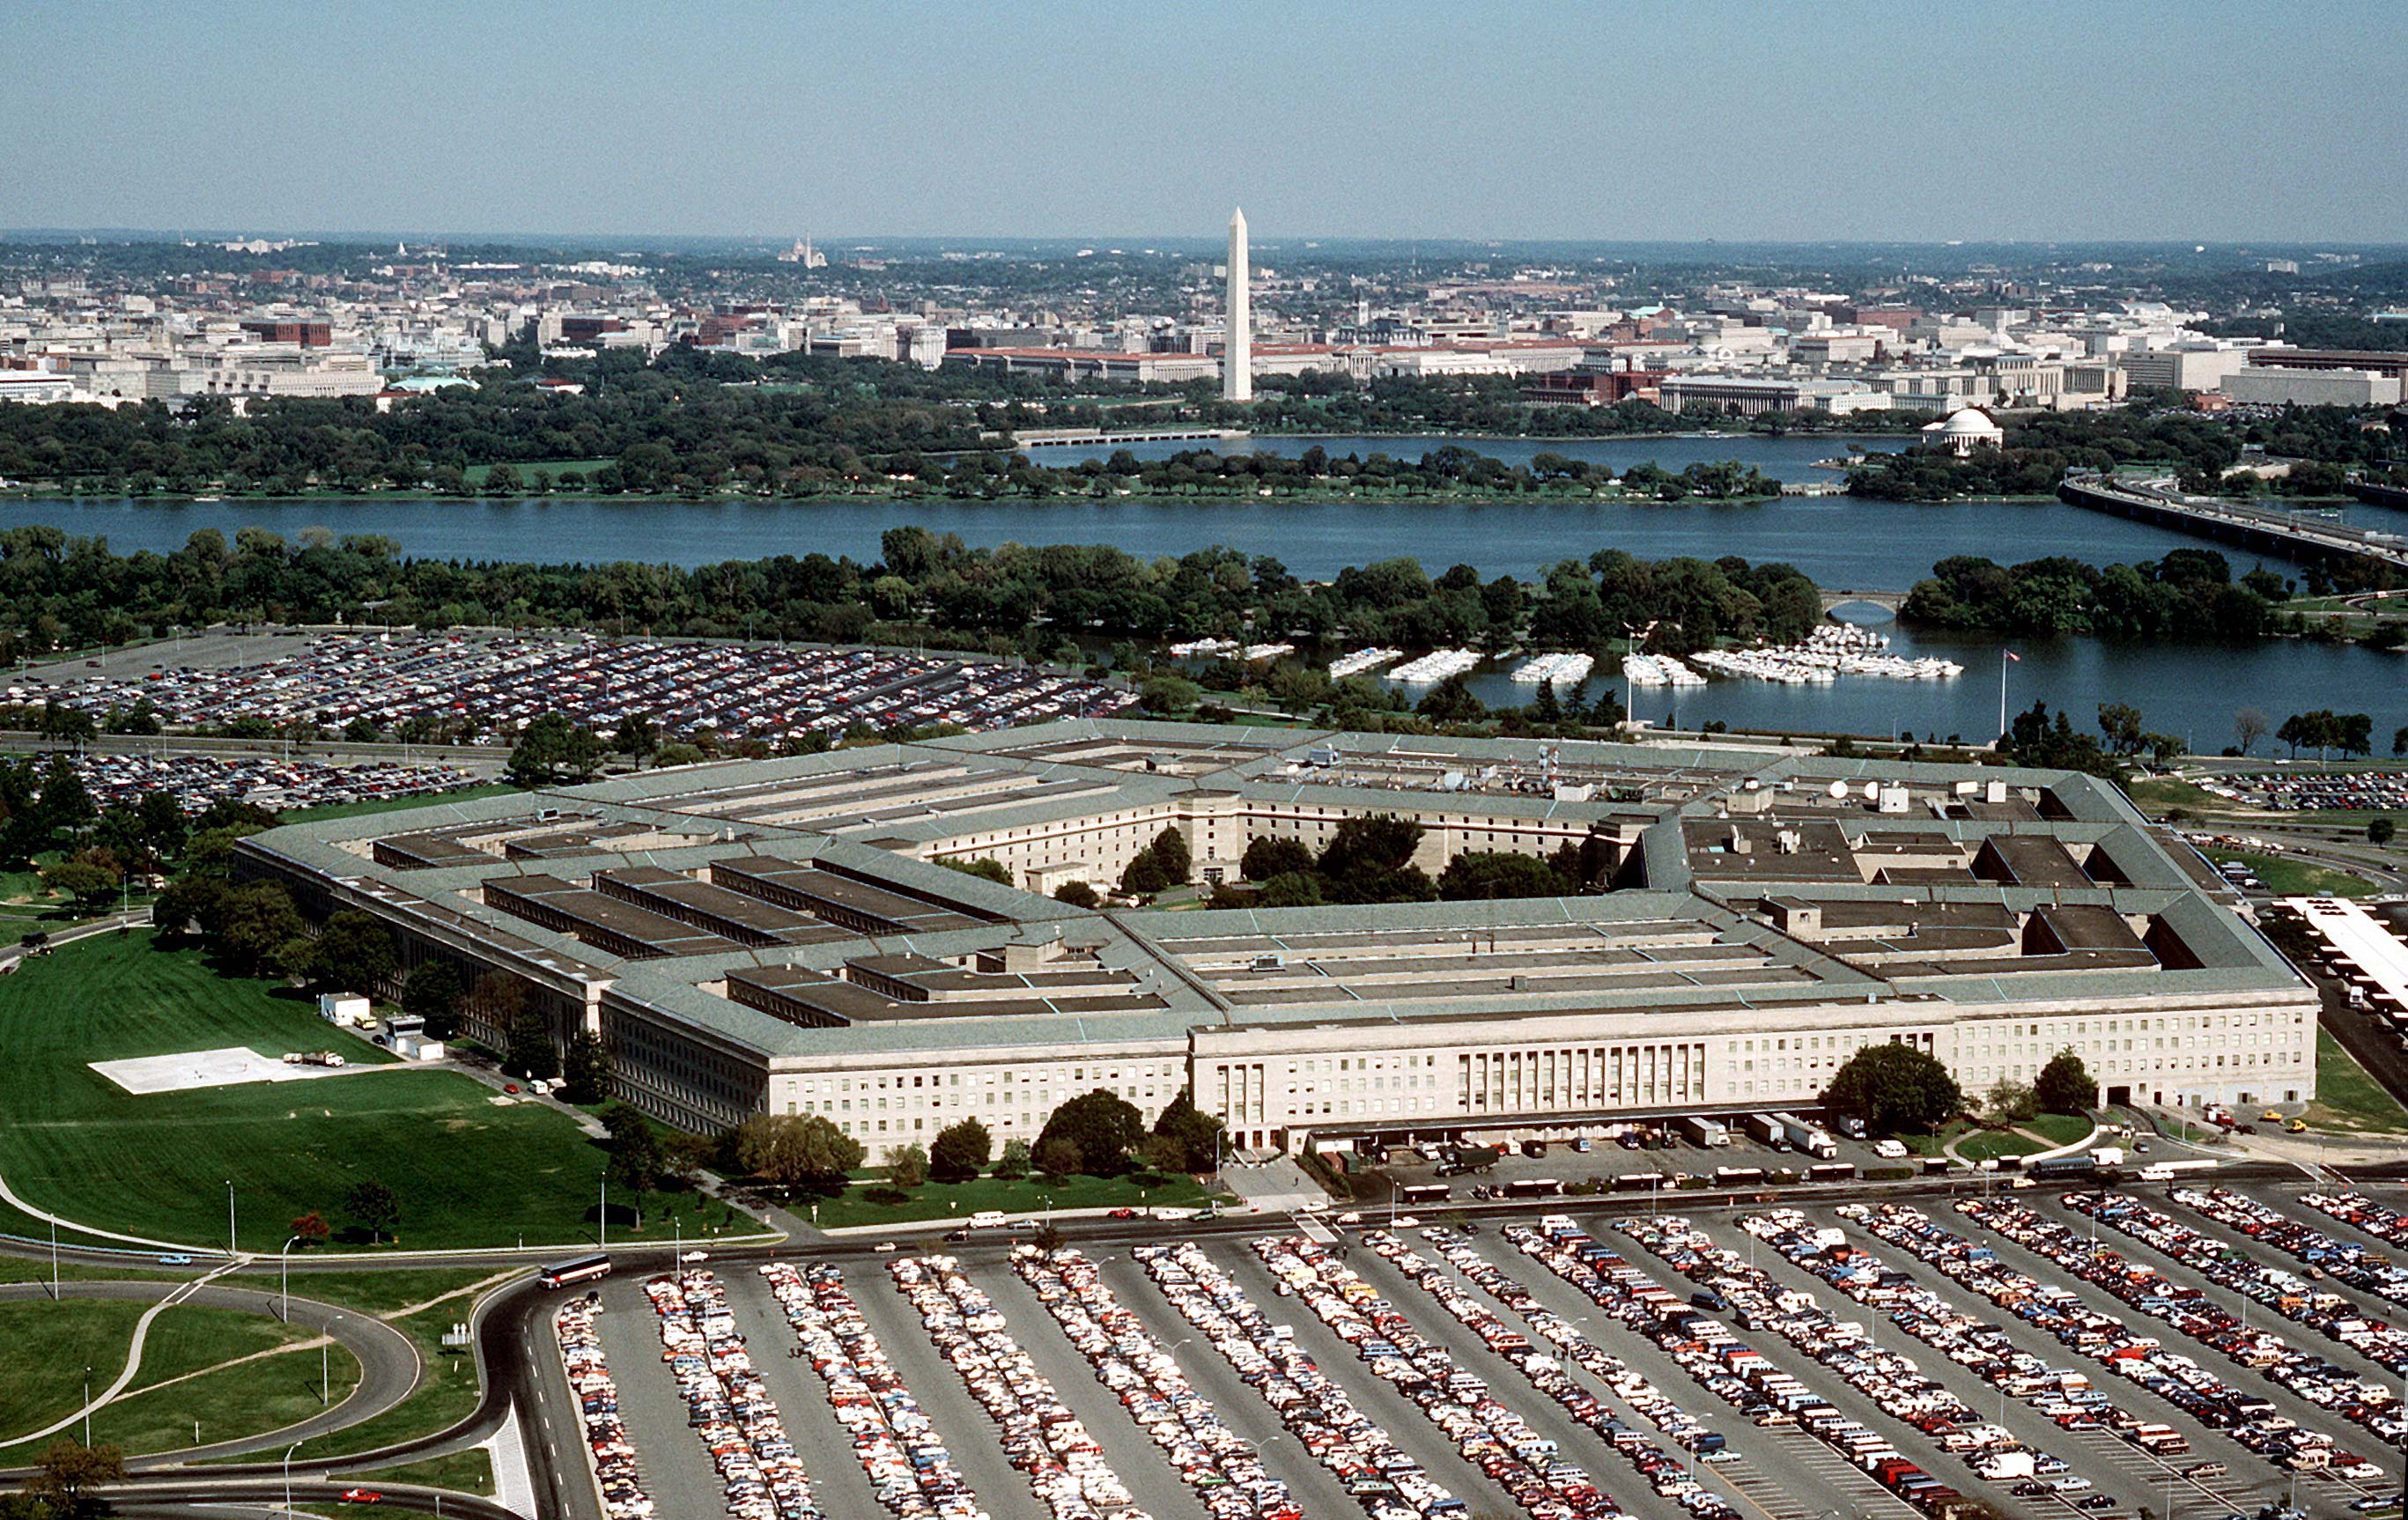 https://upload.wikimedia.org/wikipedia/commons/d/d2/The_Pentagon_US_Department_of_Defense_building.jpg